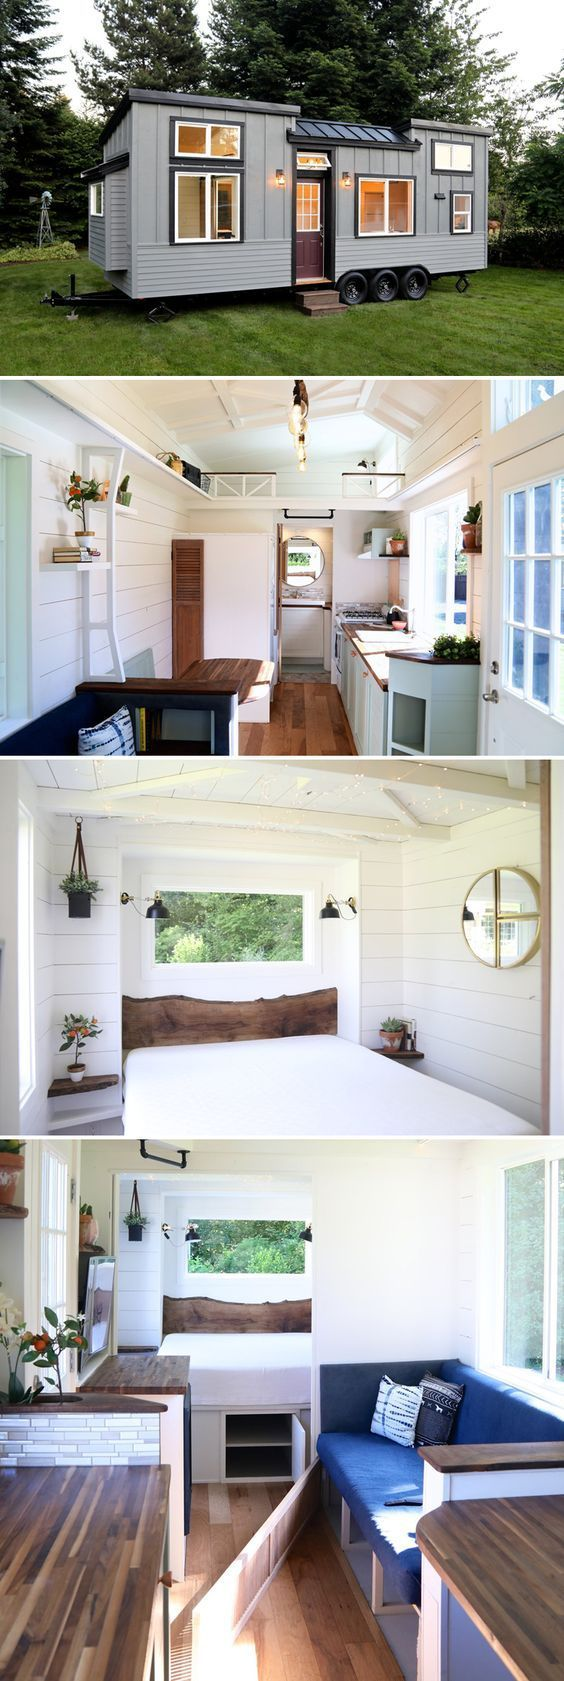 Pacific Pioneer by Handcrafted Movement Tiny House